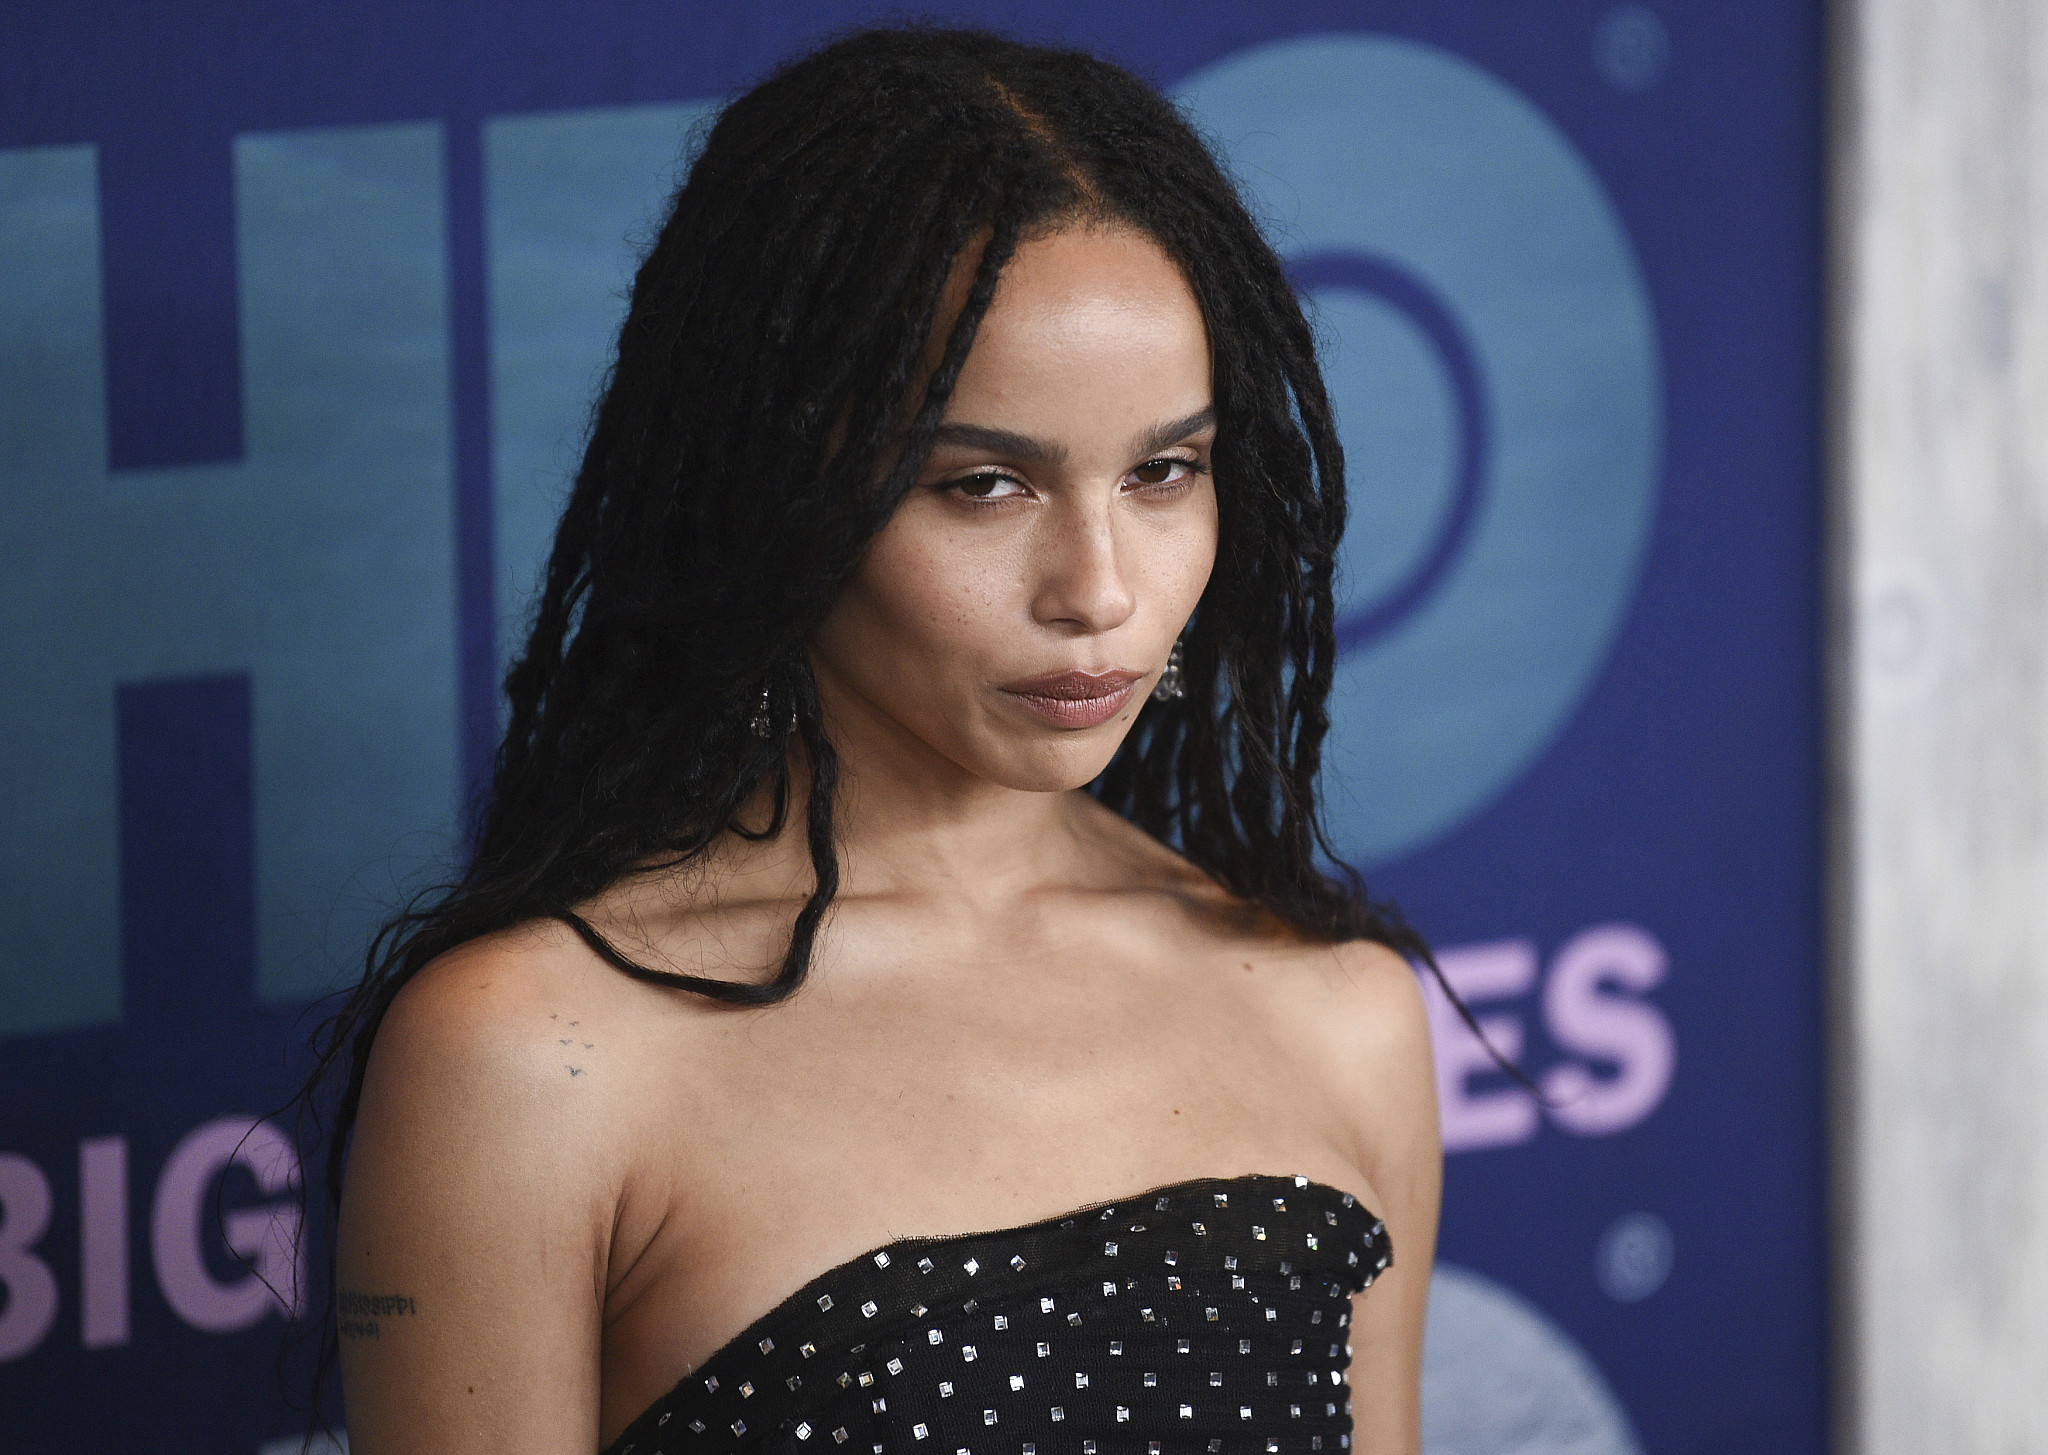 Zoe Kravitz To Play Catwoman In New Batman Film The Times